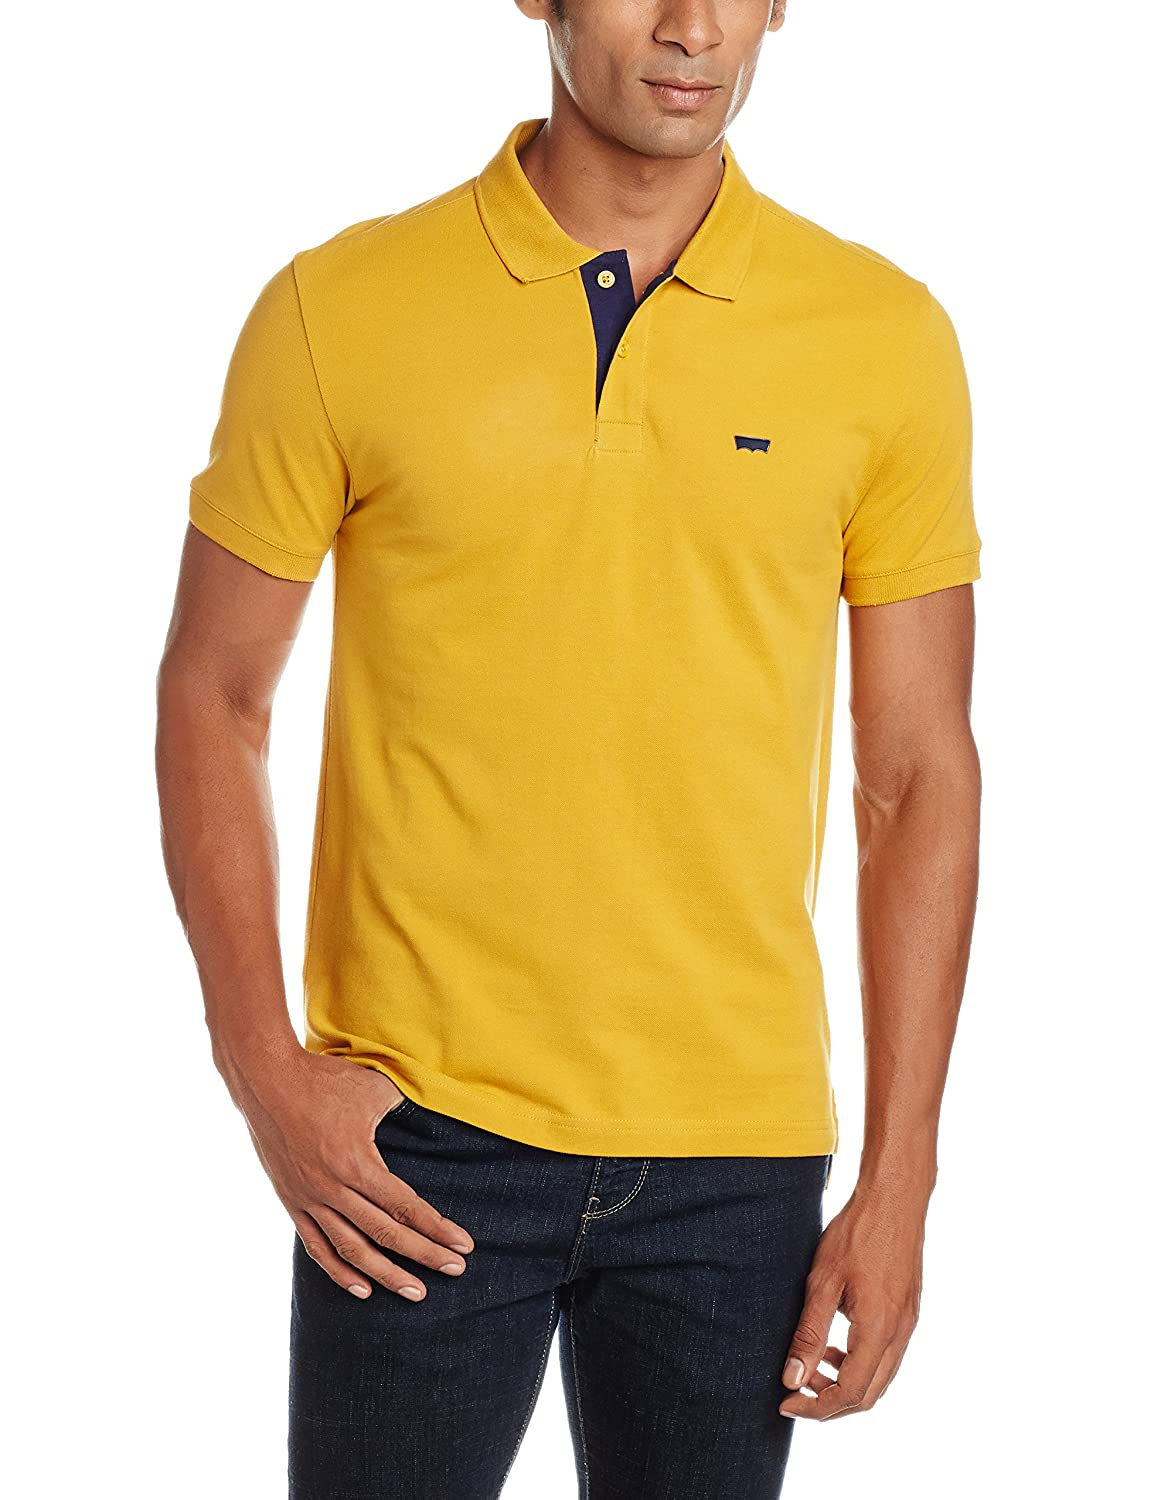 Minimum 40% off On Levis By Amazon | Levi's Men's Cotton Polo @ Rs.599